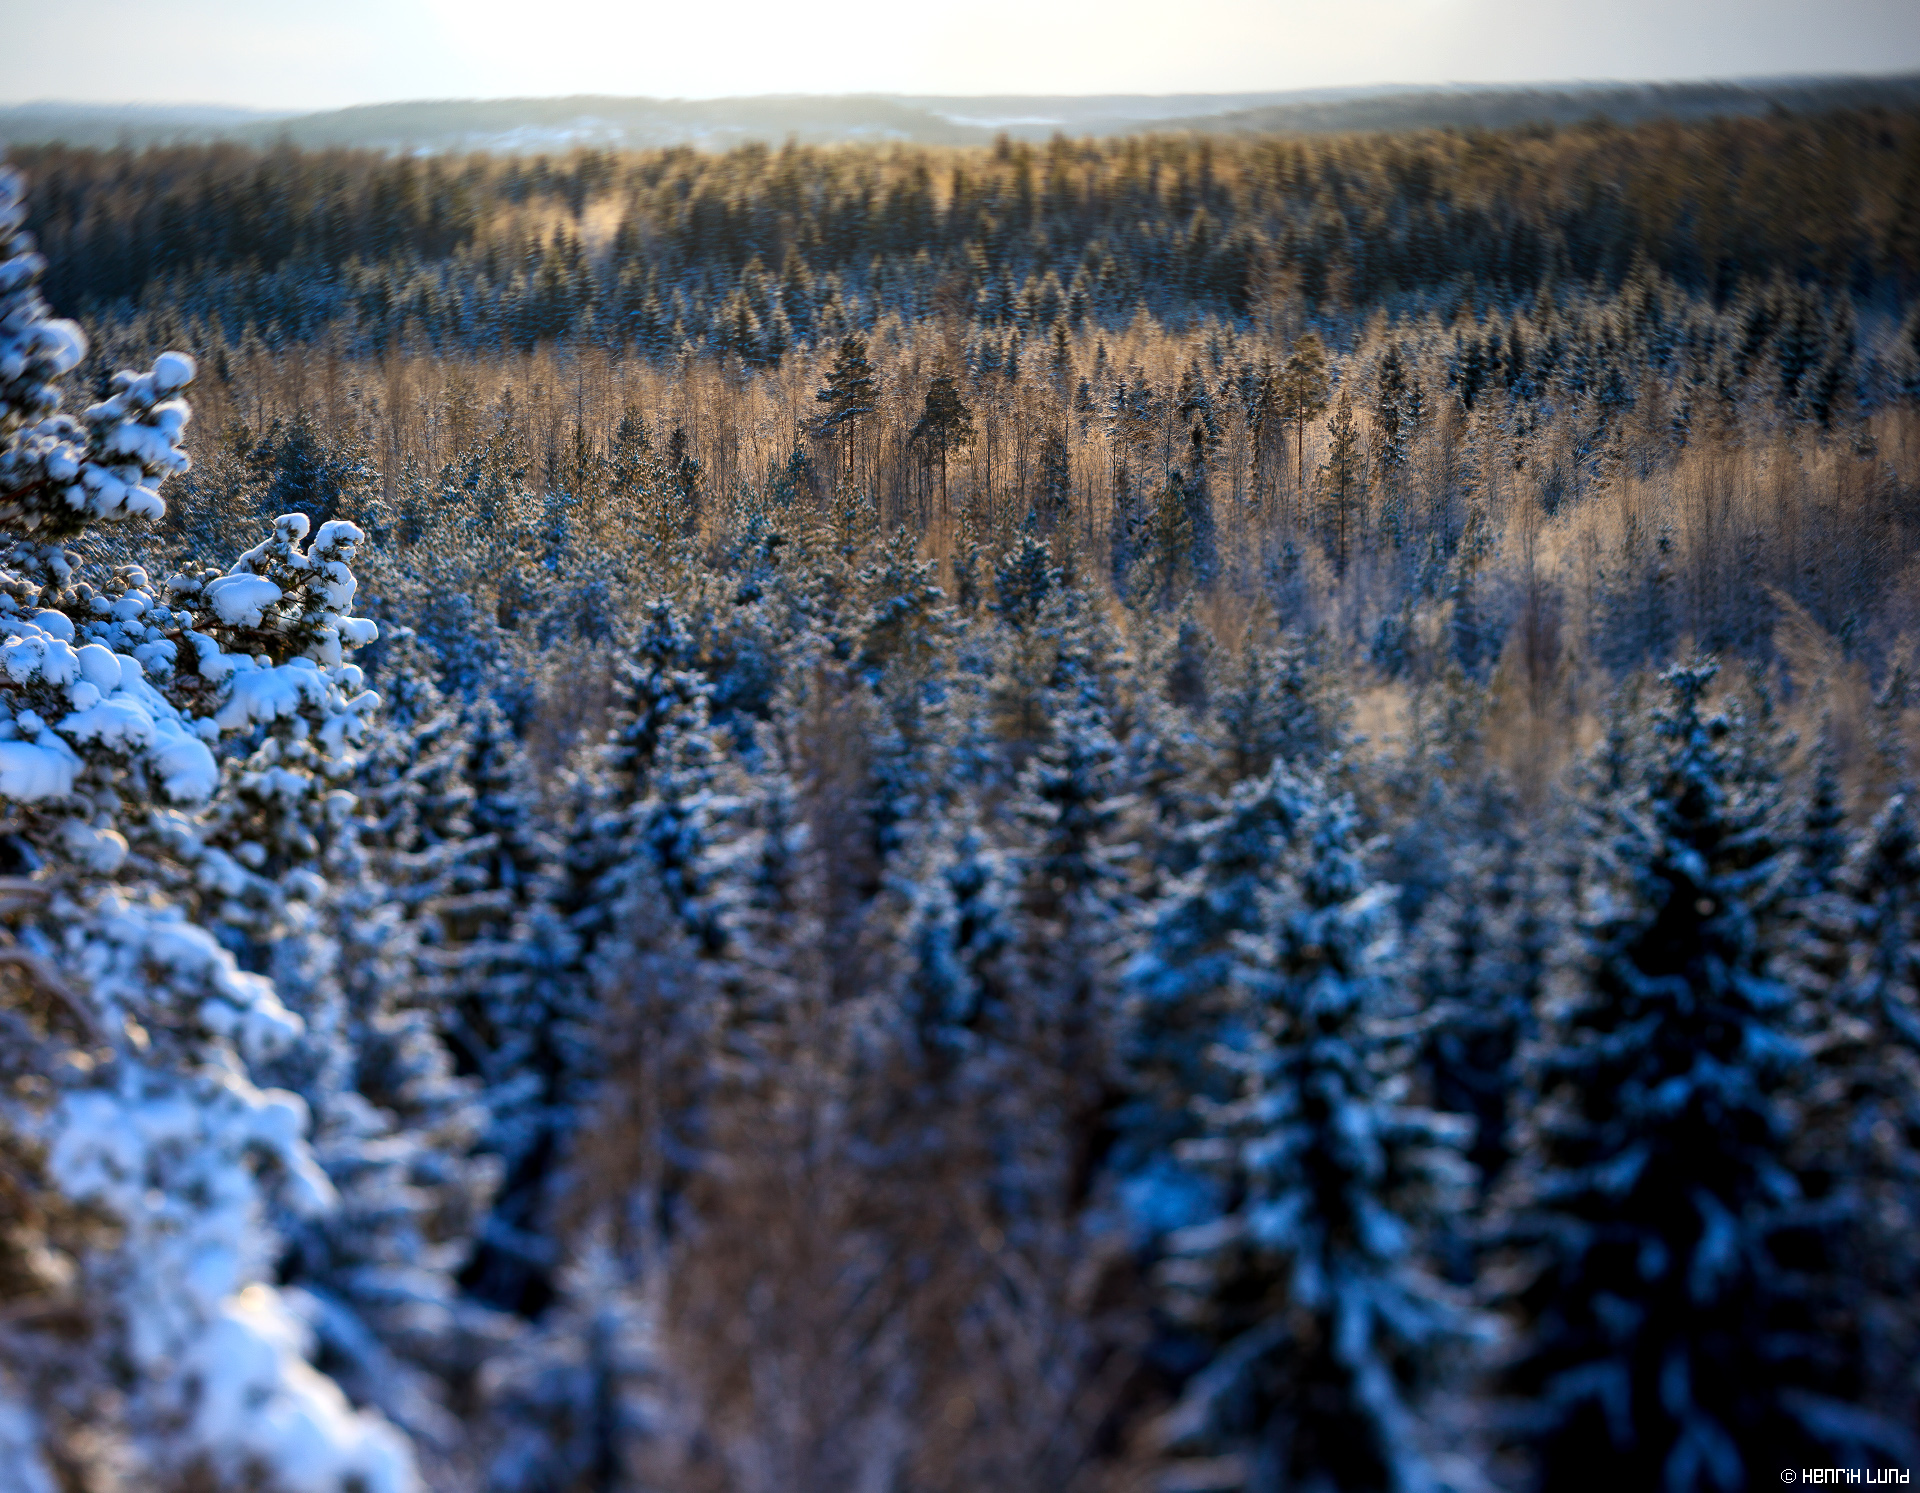 Backlit snowy forest viewed from Falkberget in Norrby, Lappträsk, Finland. January 2016.